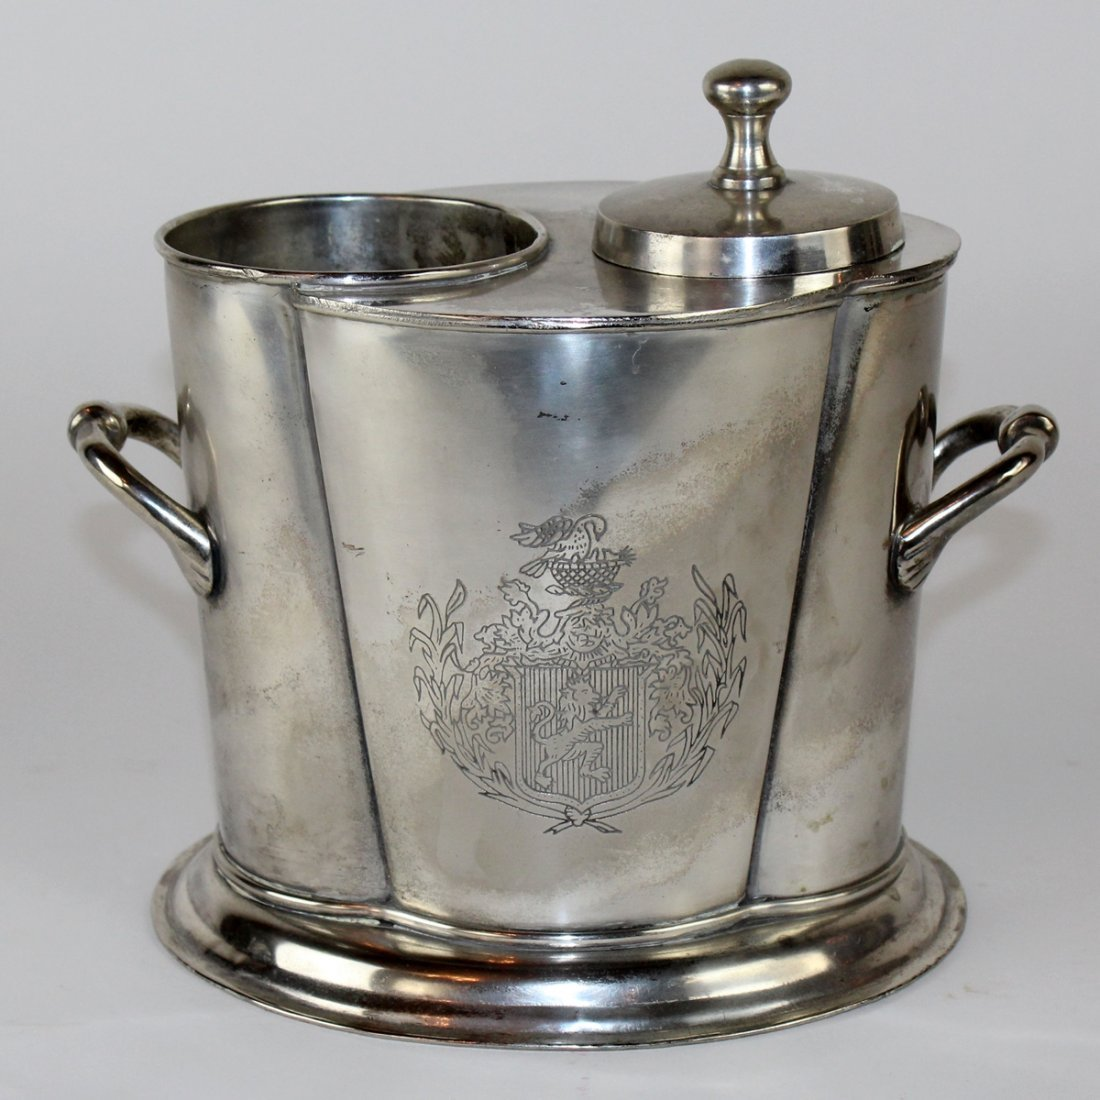 French silverplate wine cooler